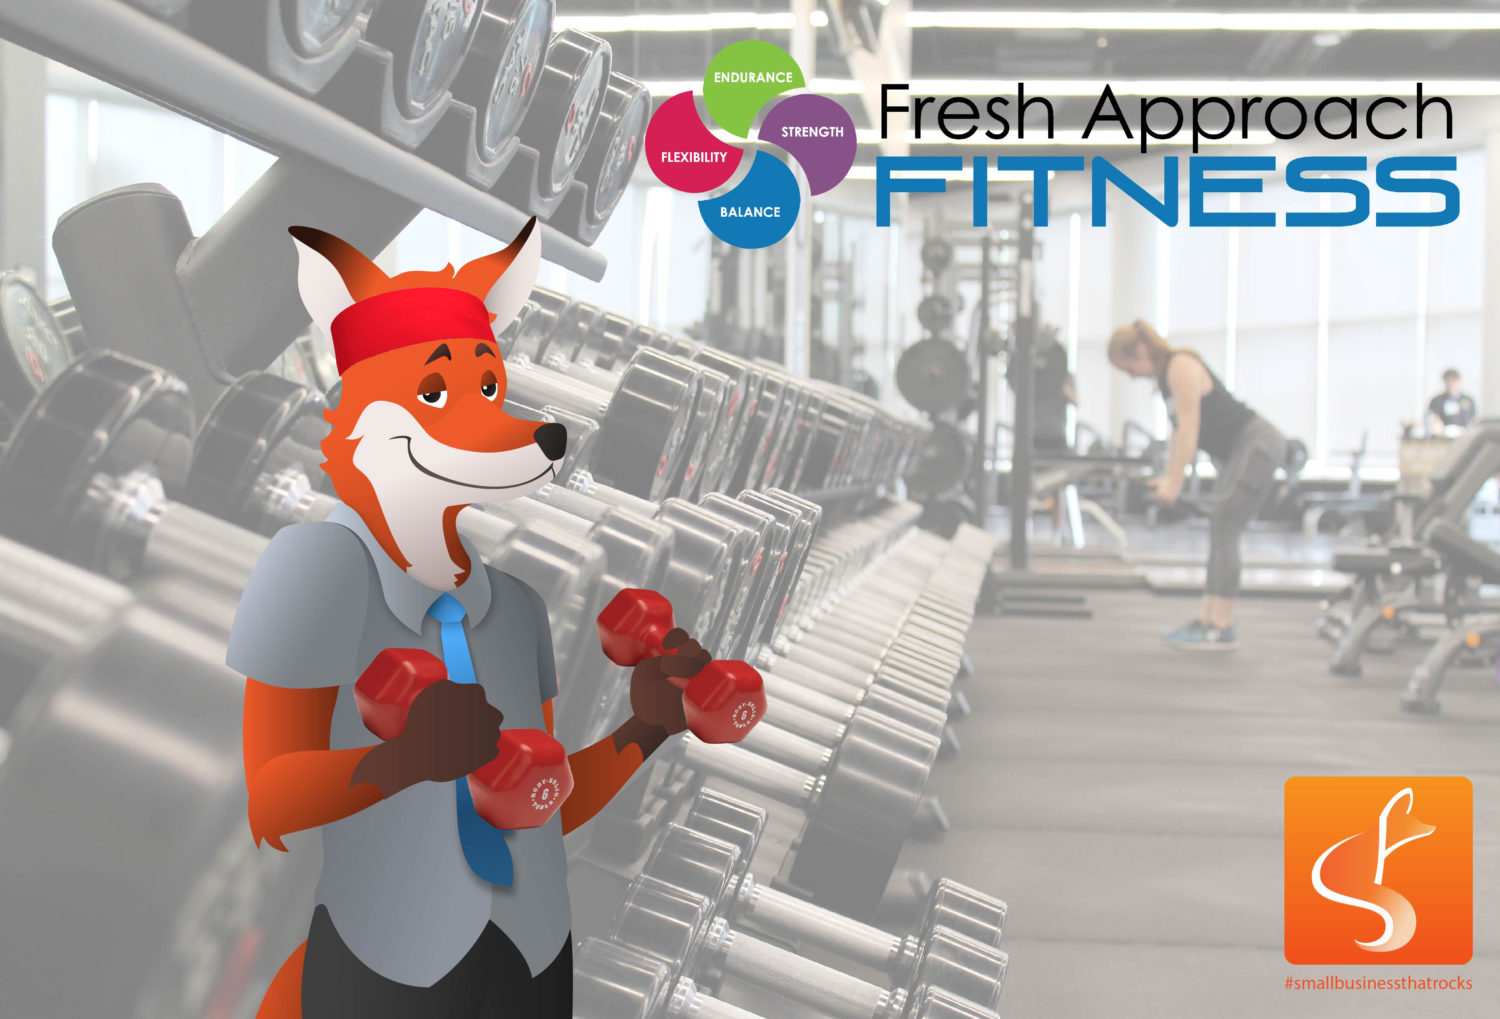 fresh approach fitness header - SlyFox Web Design and Marketing